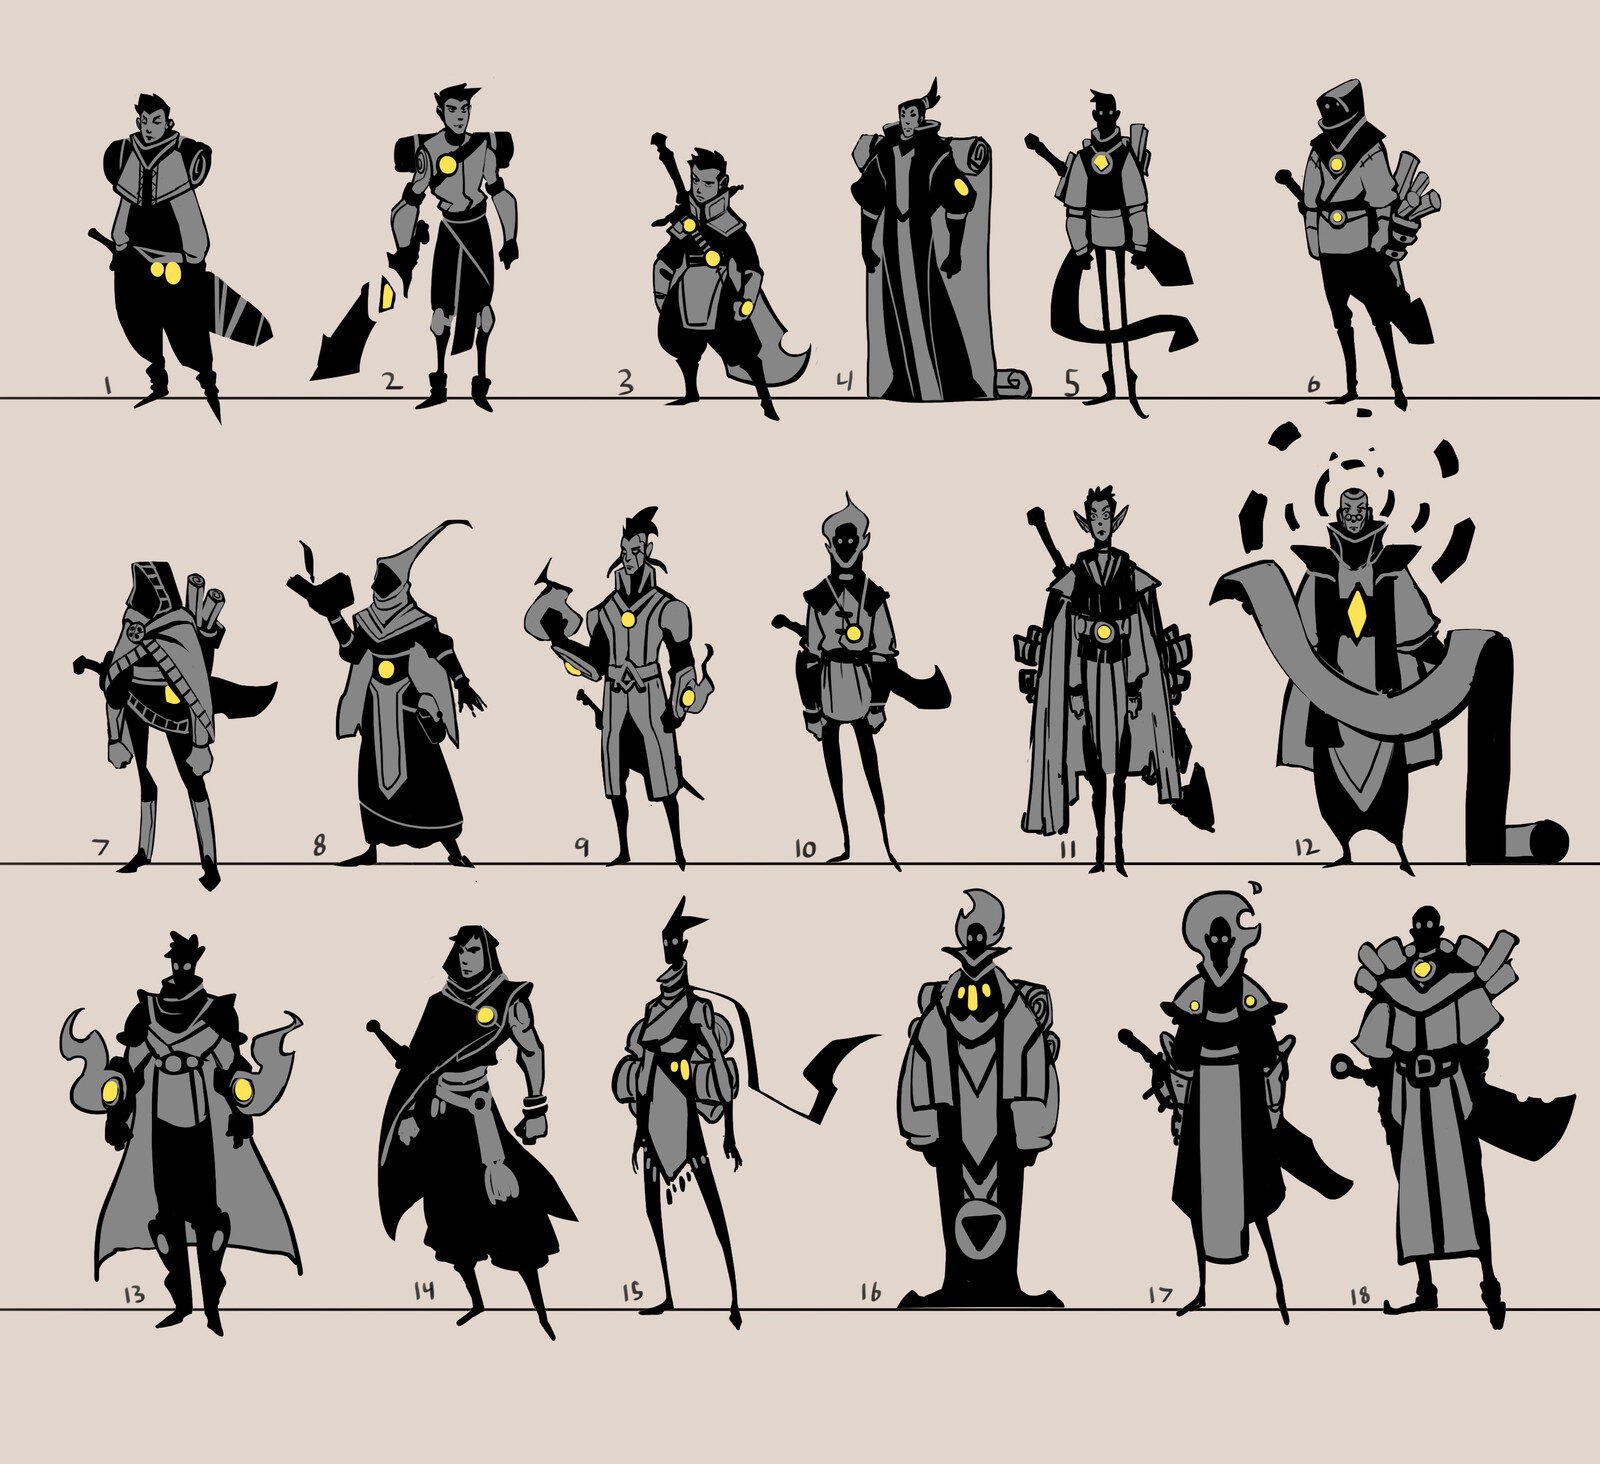 Thumbnails for a Personal Project